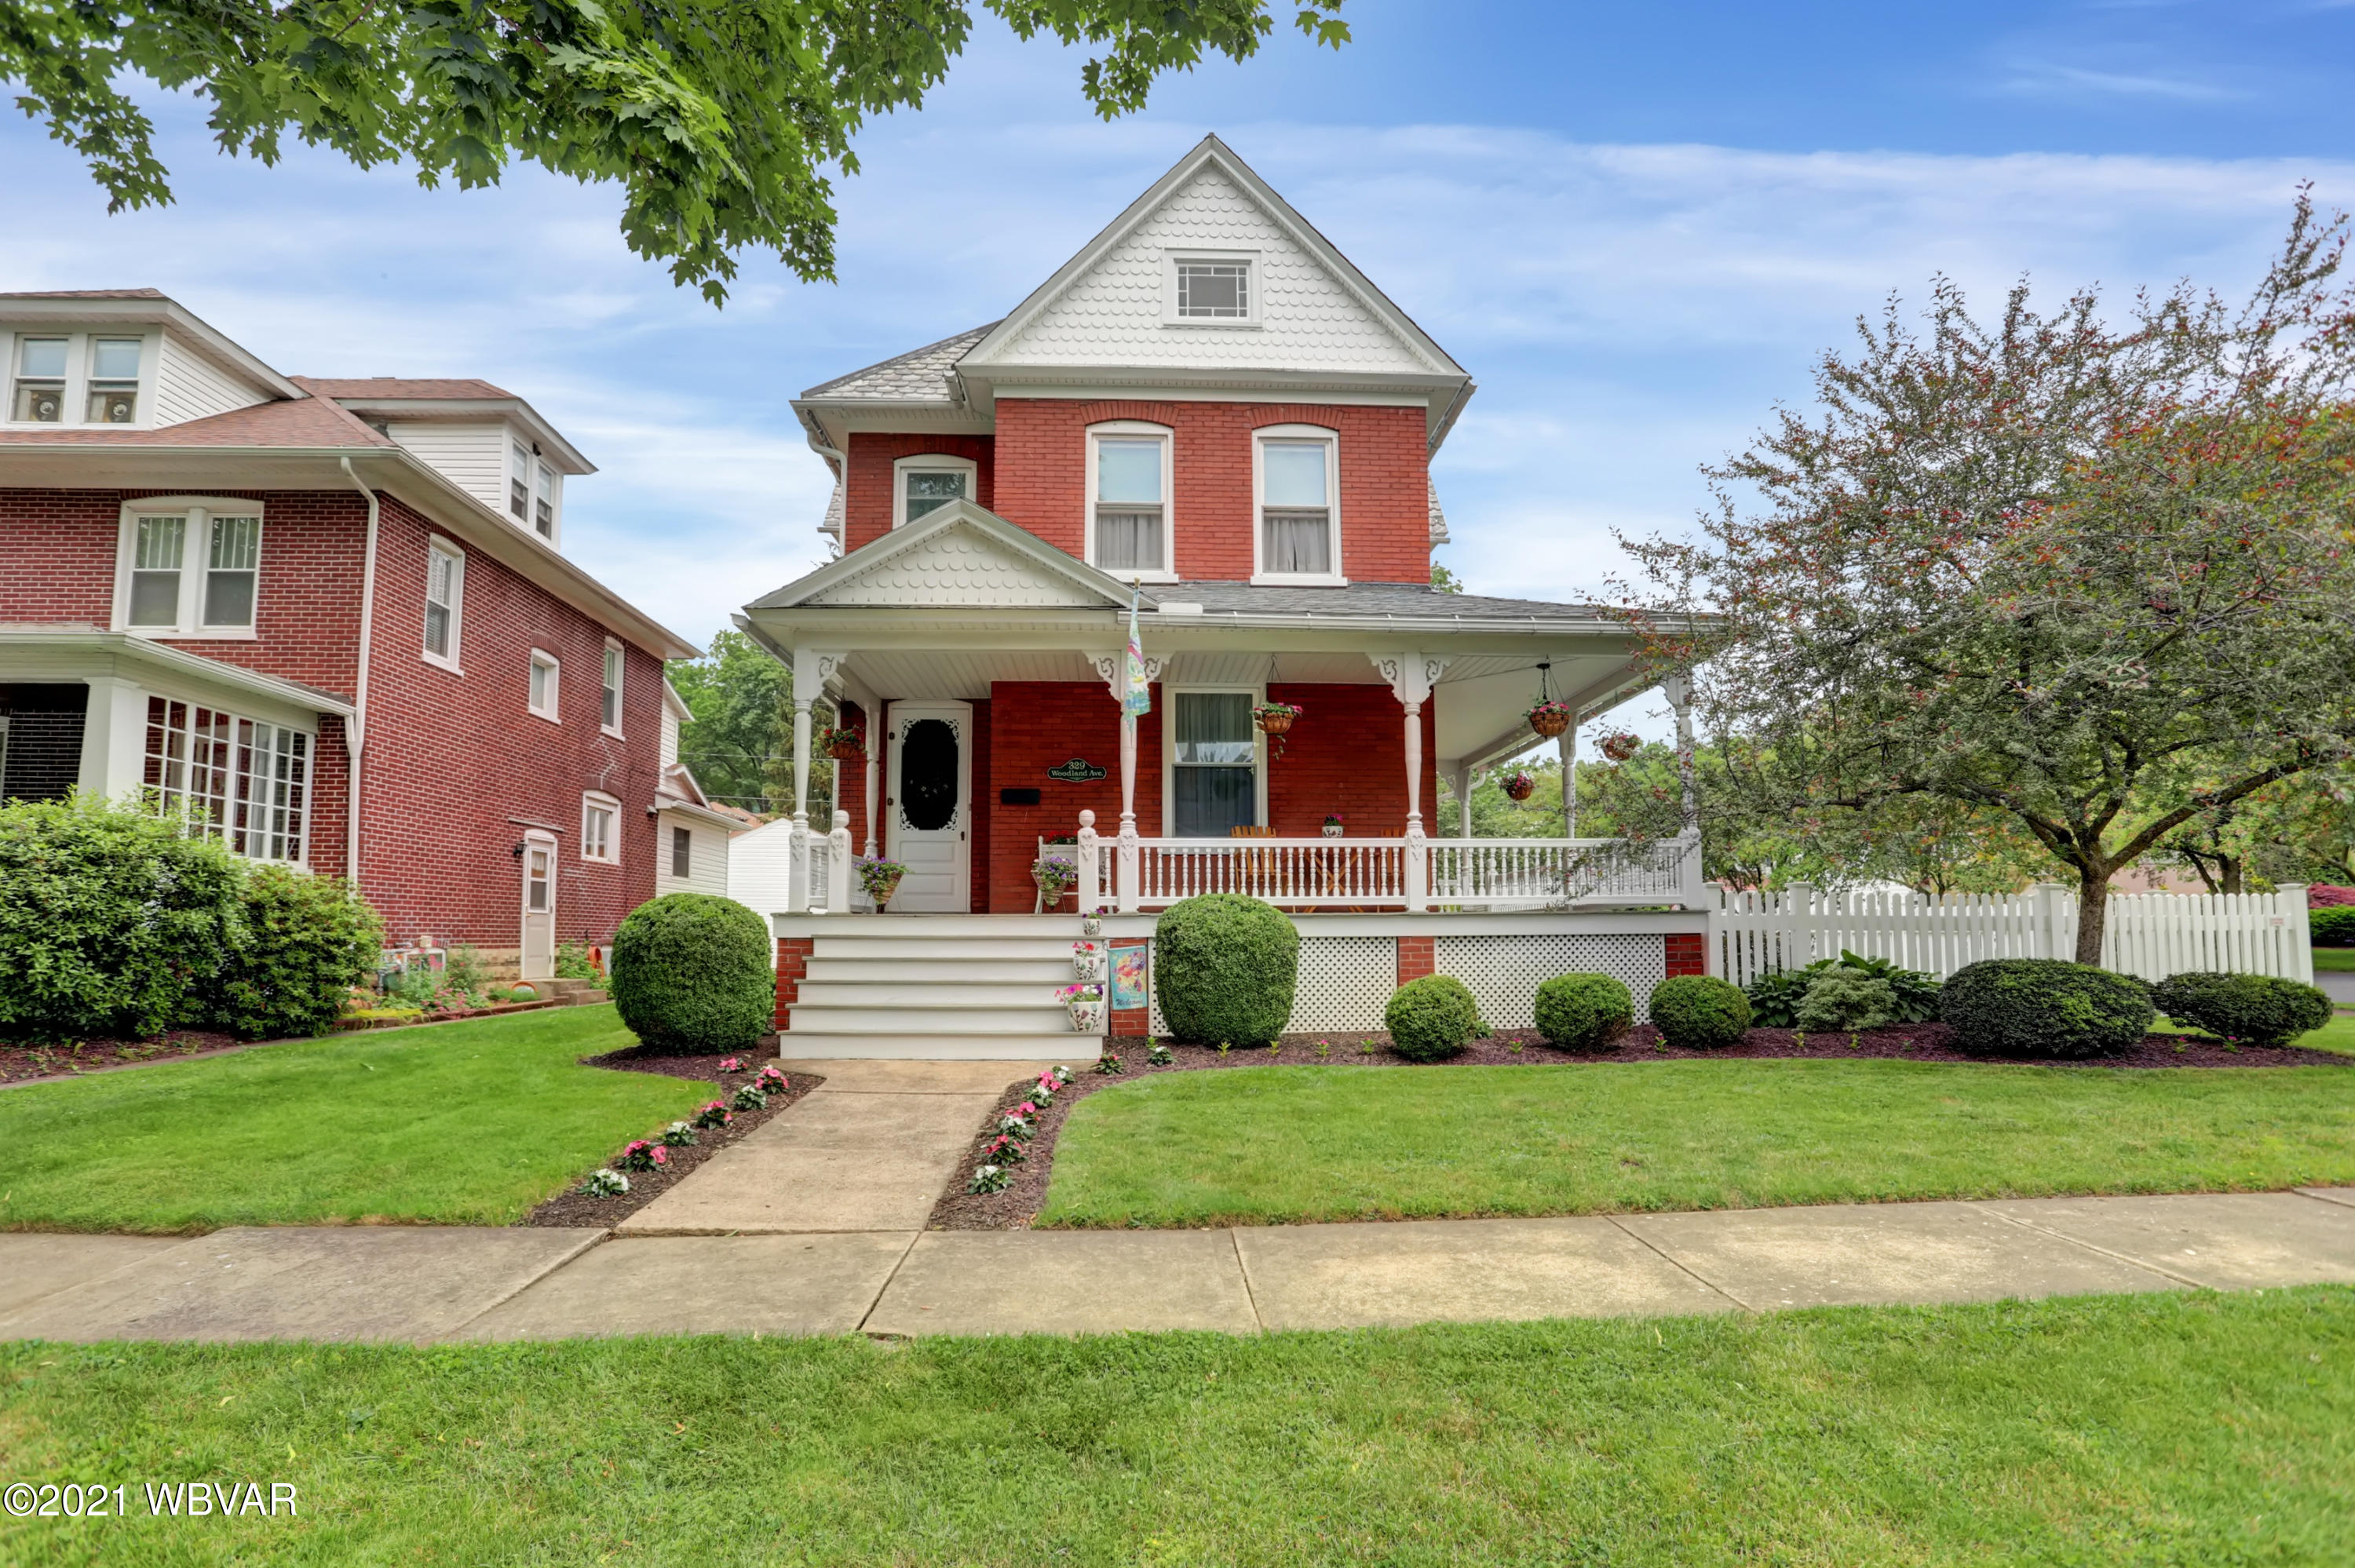 329 WOODLAND AVENUE, Williamsport, PA 17701, 3 Bedrooms Bedrooms, ,1 BathroomBathrooms,Residential,For sale,WOODLAND,WB-92724